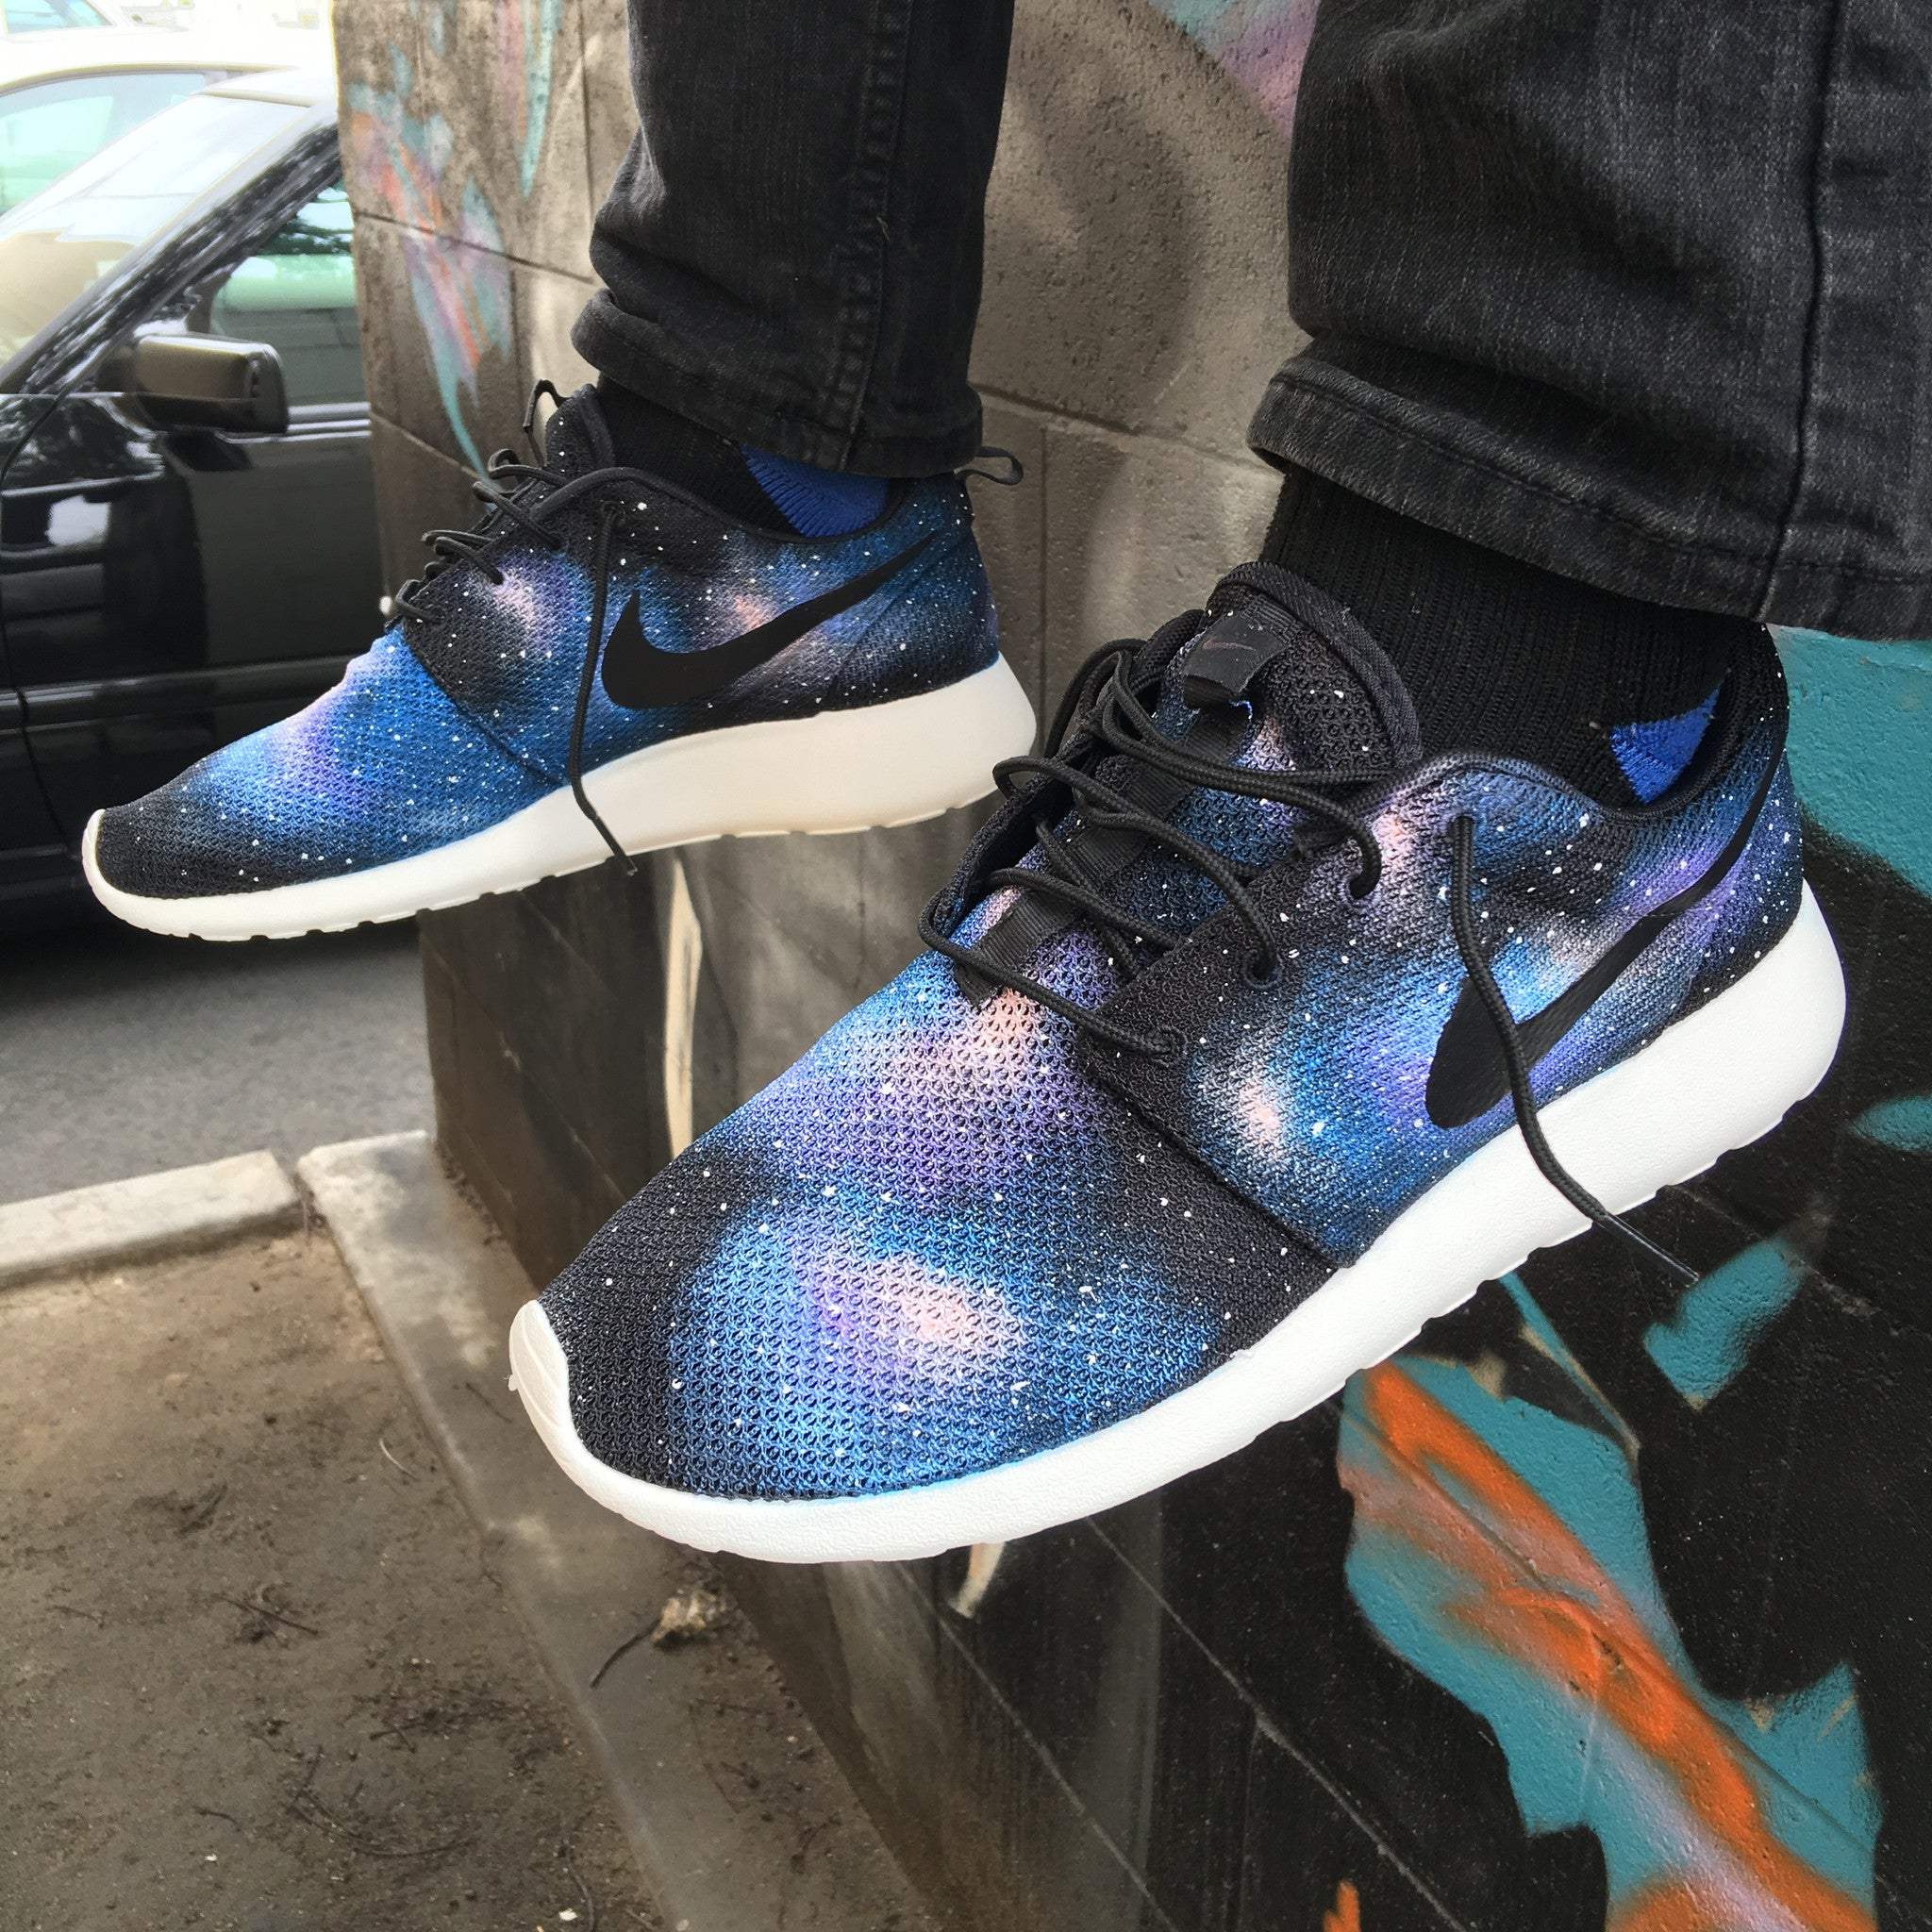 new concept 0a53e b6b1f ... Galaxy Roshe, Custom Painted Galaxy Nike Roshe One Sneakers ...